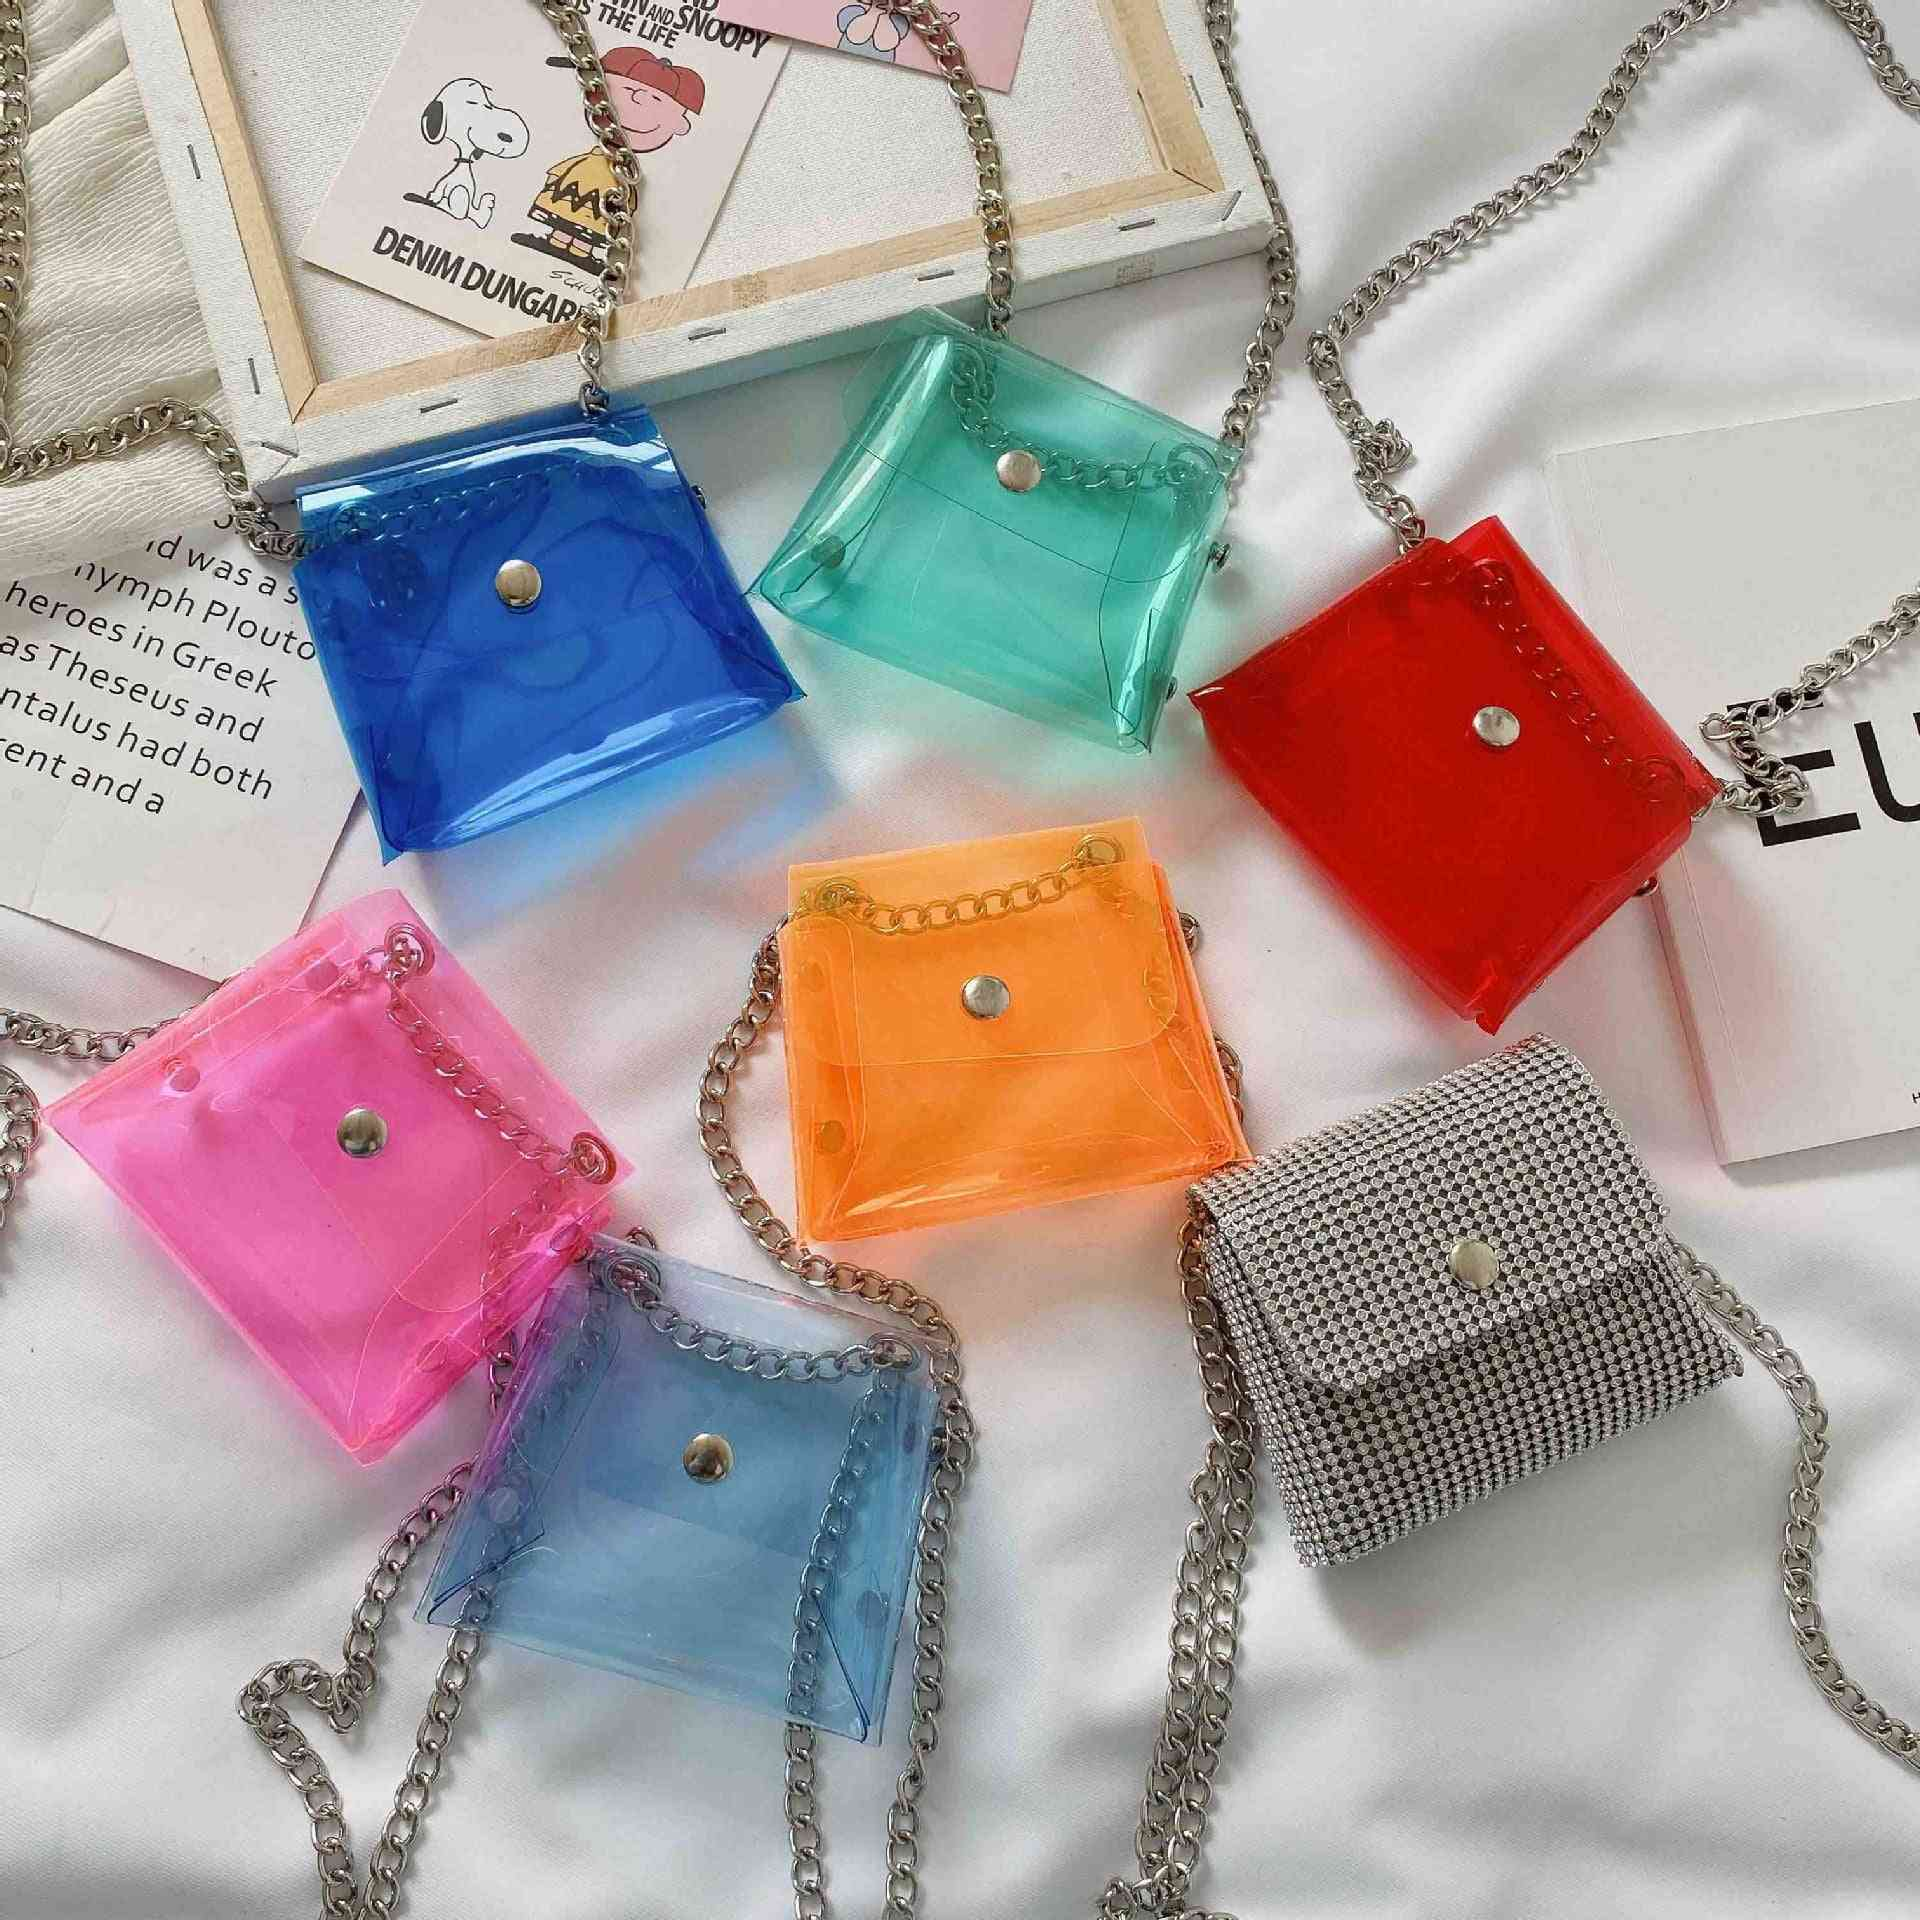 Mini Coin, Transparent Jelly Purse, Small Zero Wallet, Pouch Clear Bag